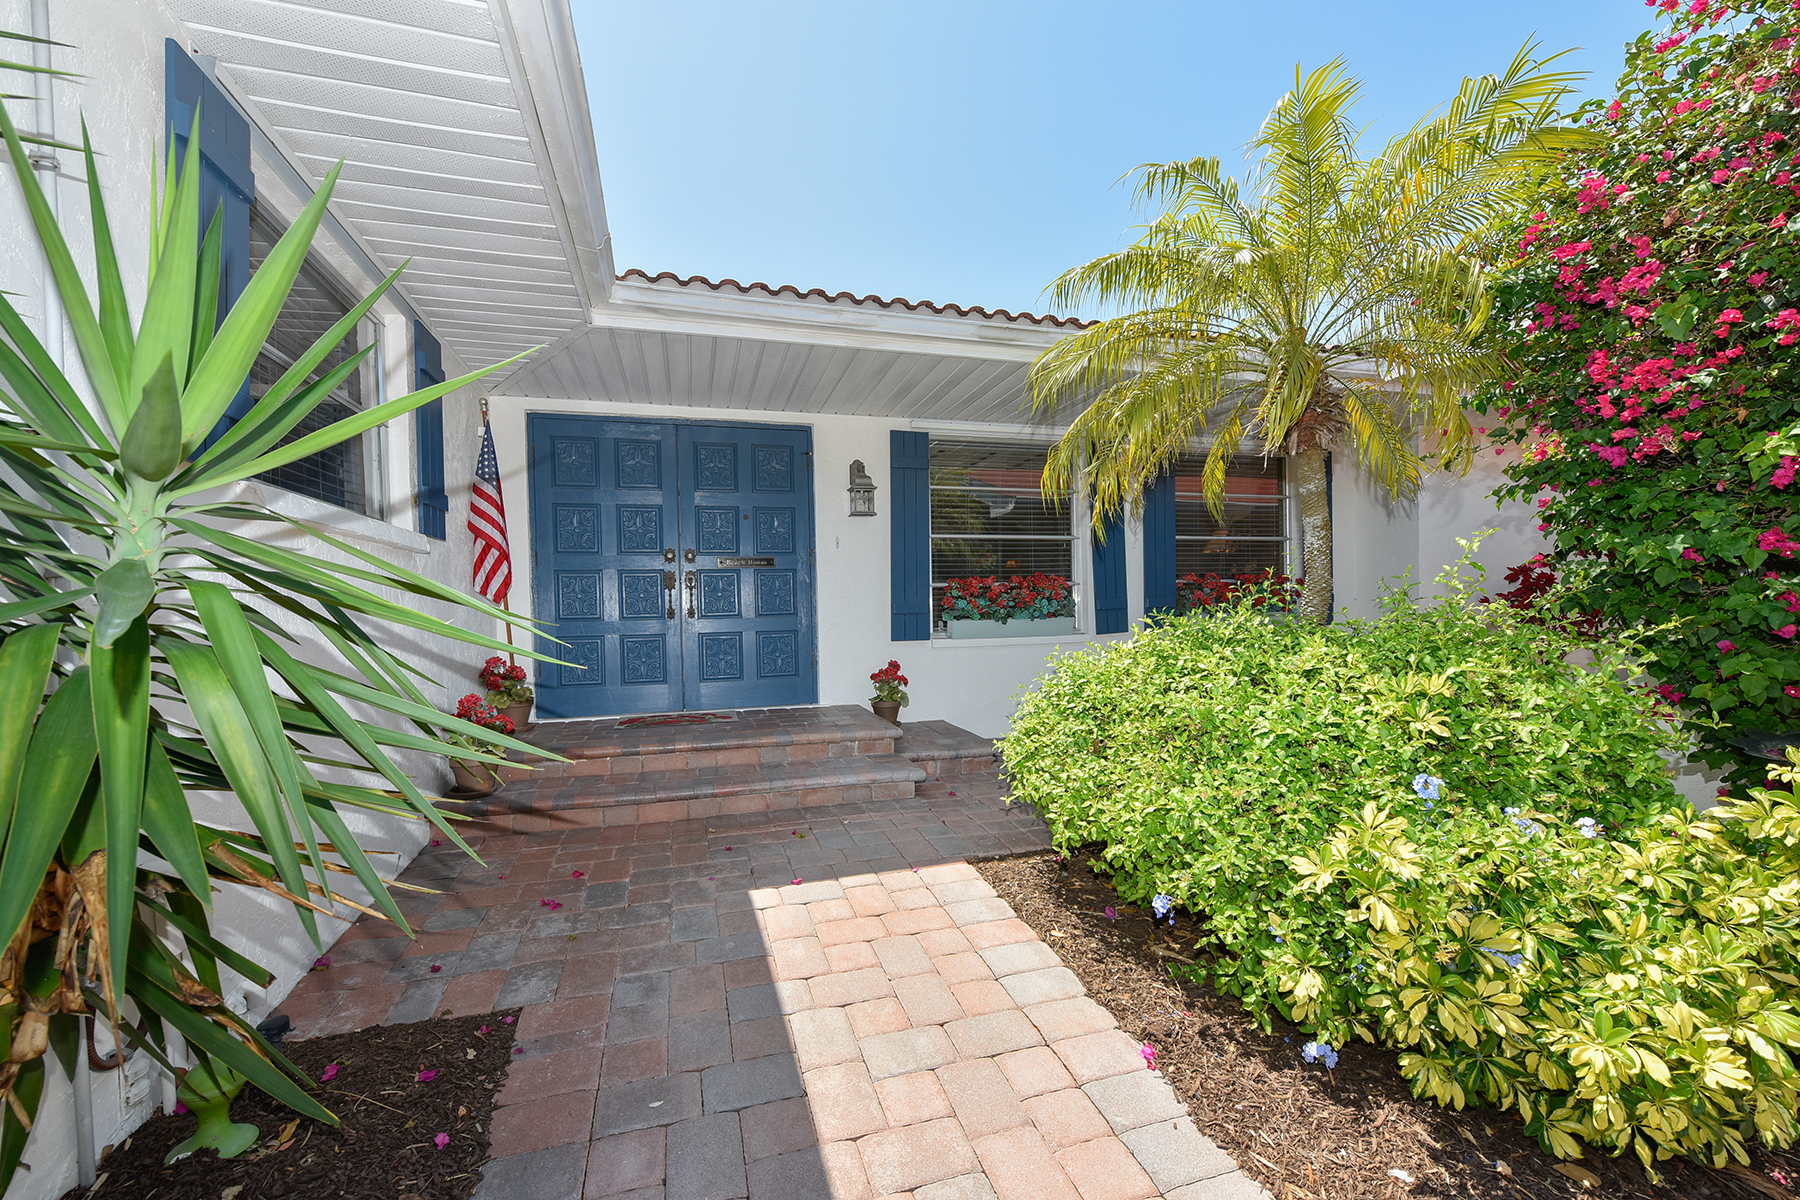 Single Family Home for Sale at 313 The Esplanade S, Venice, FL 34285 313 The Esplanade S, Venice, Florida 34285 United States